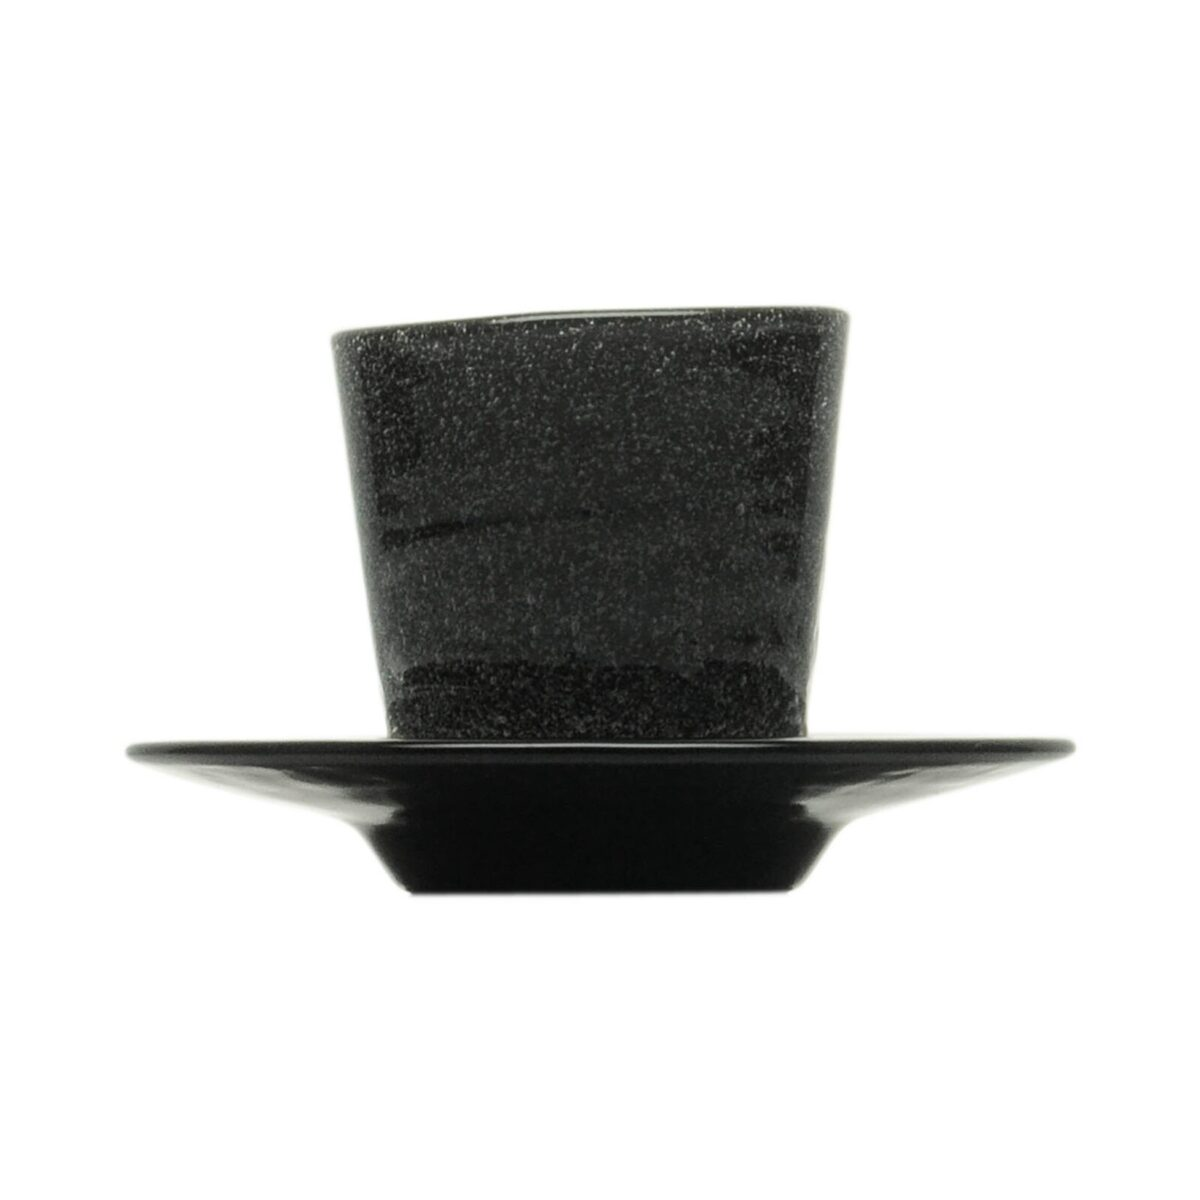 000927 - COFFEE CUP - BLACK SOLID